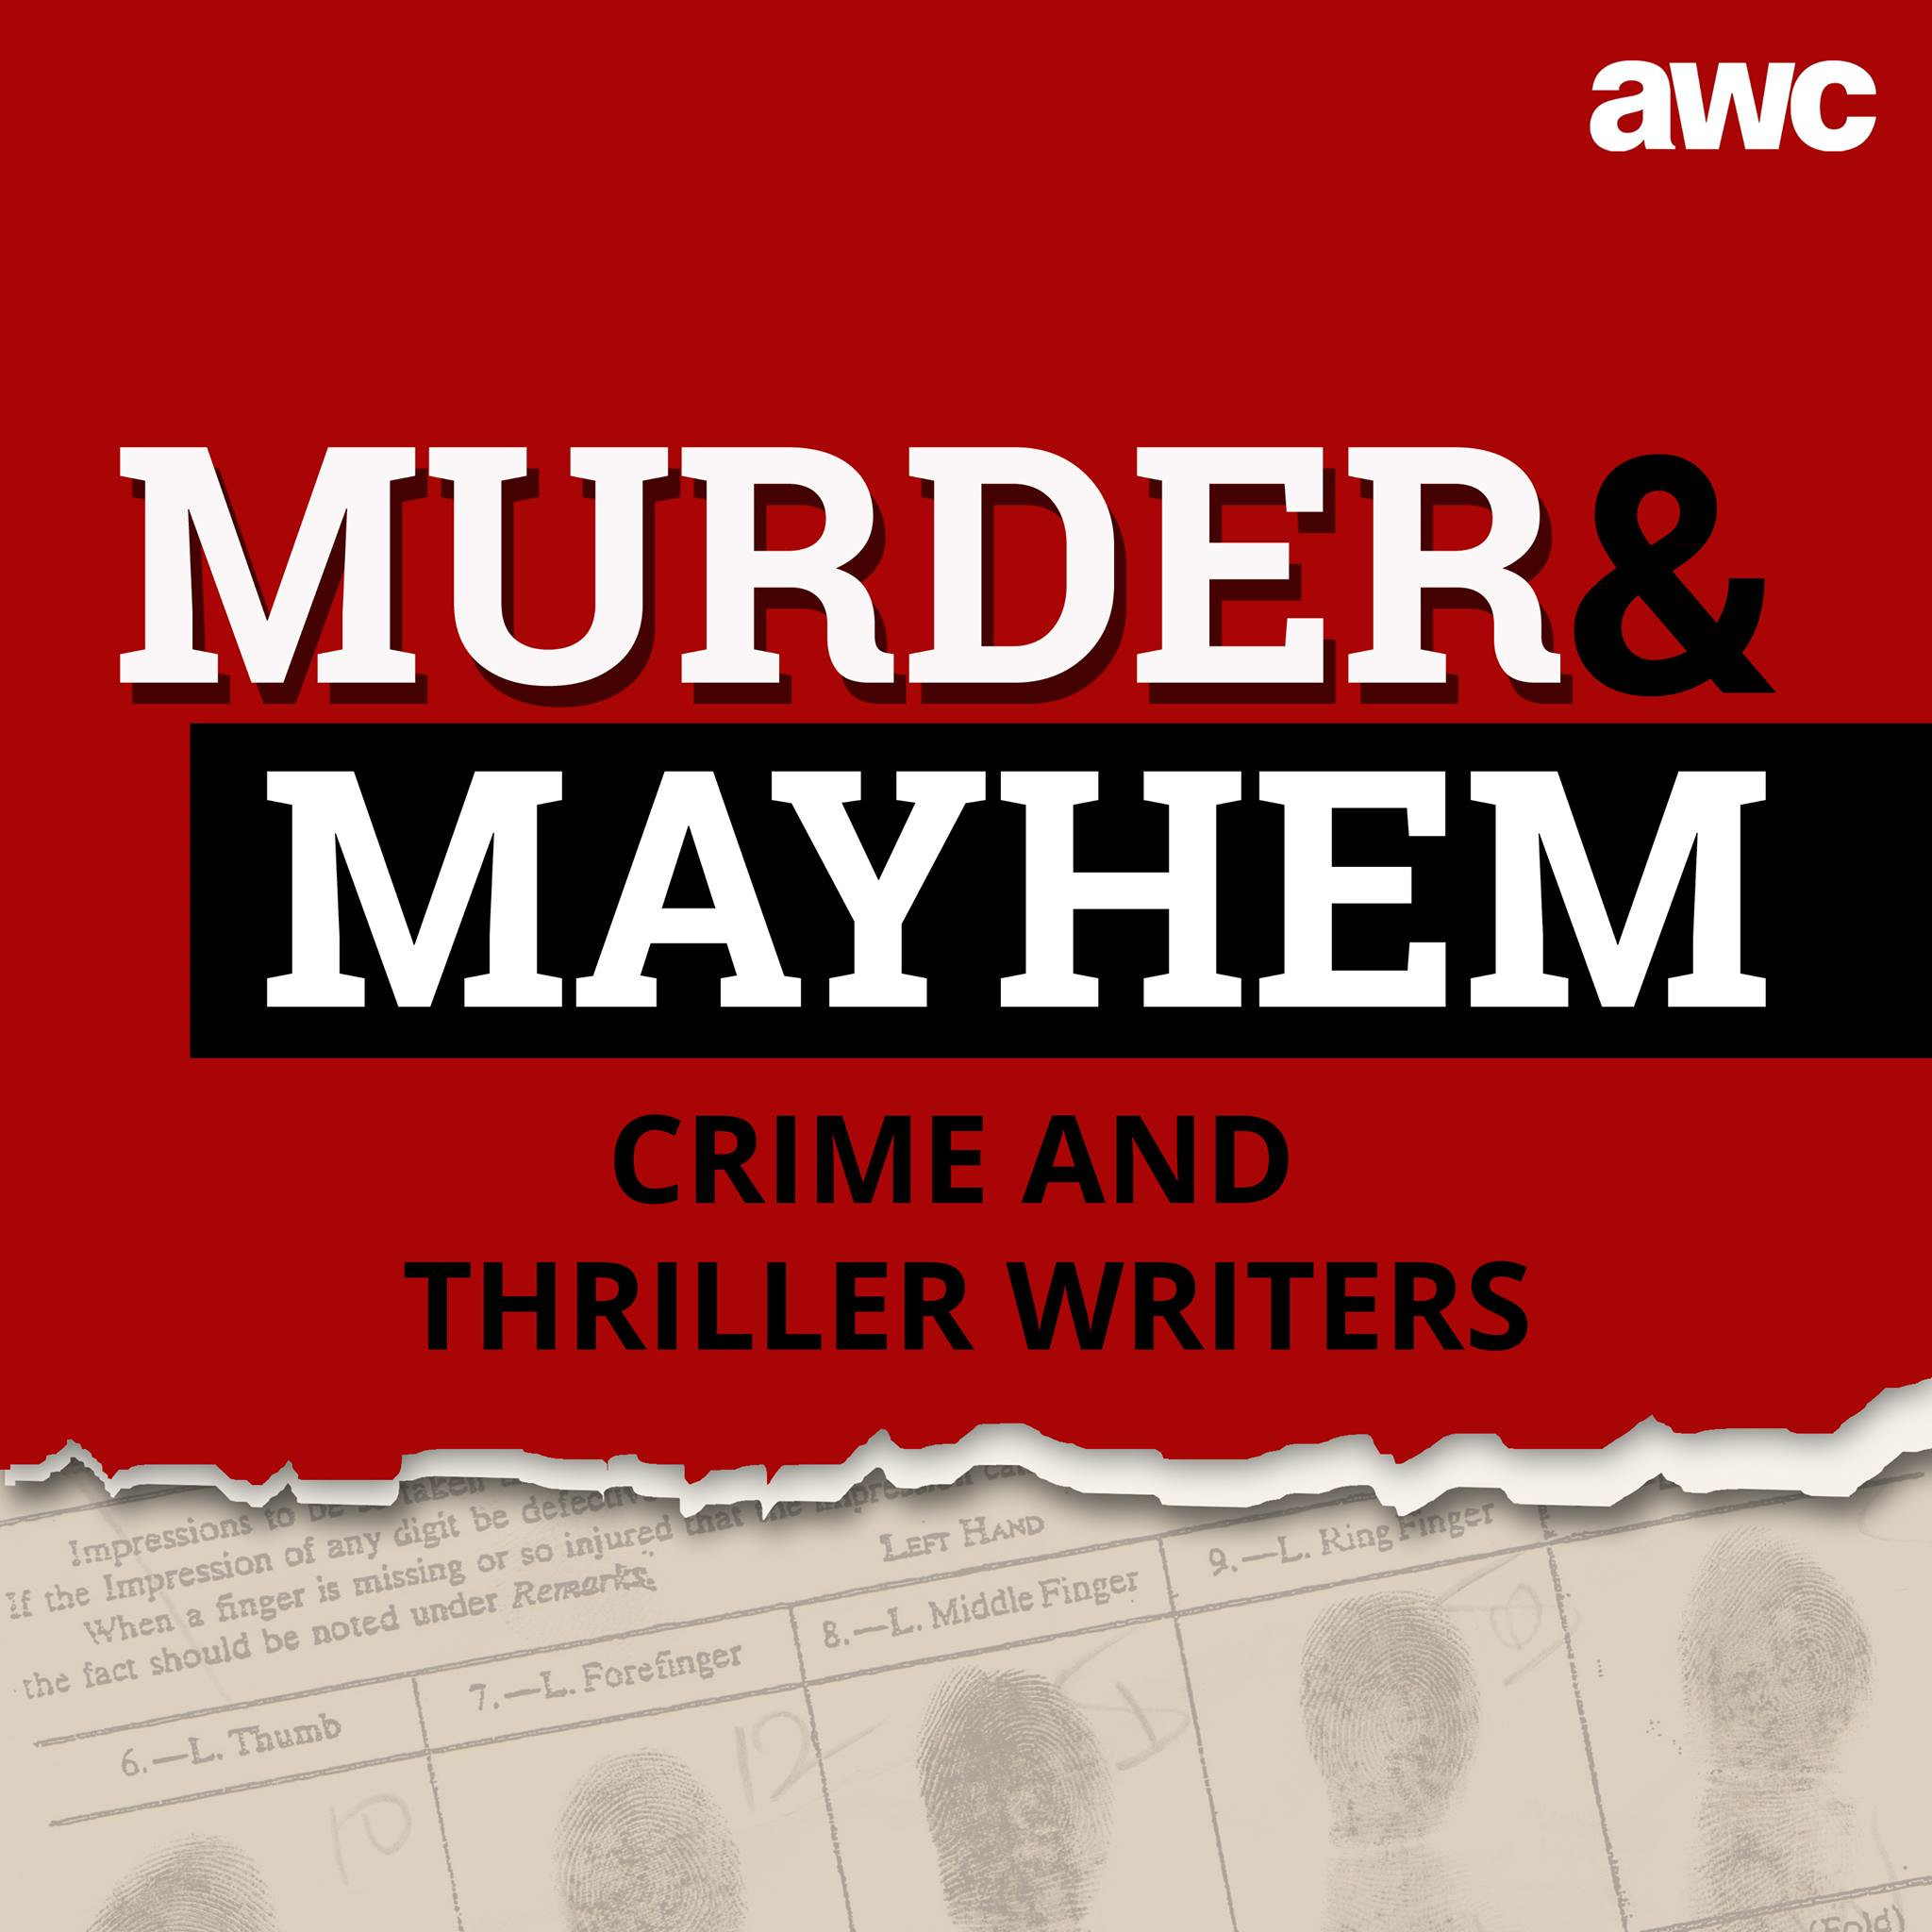 MURDER MAYHEM 22: John Connolly is a crime writer famous for his series of novels including The Killing Kind. @jconnollybooks